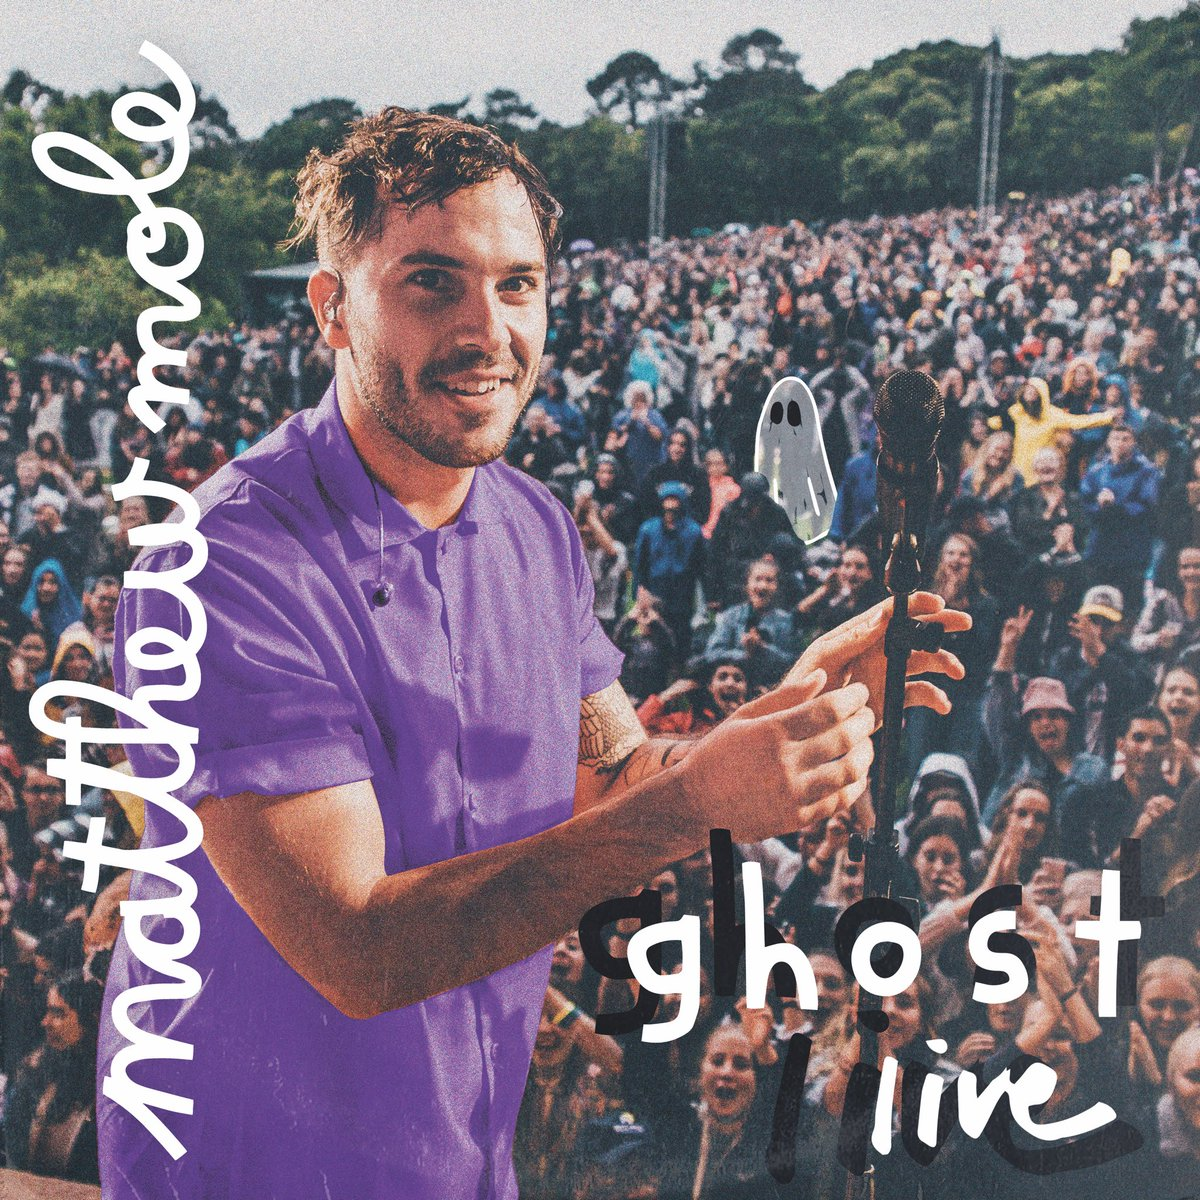 Aaaaaand, GHOST LIVE full album is out in exactly one week! 👻💜